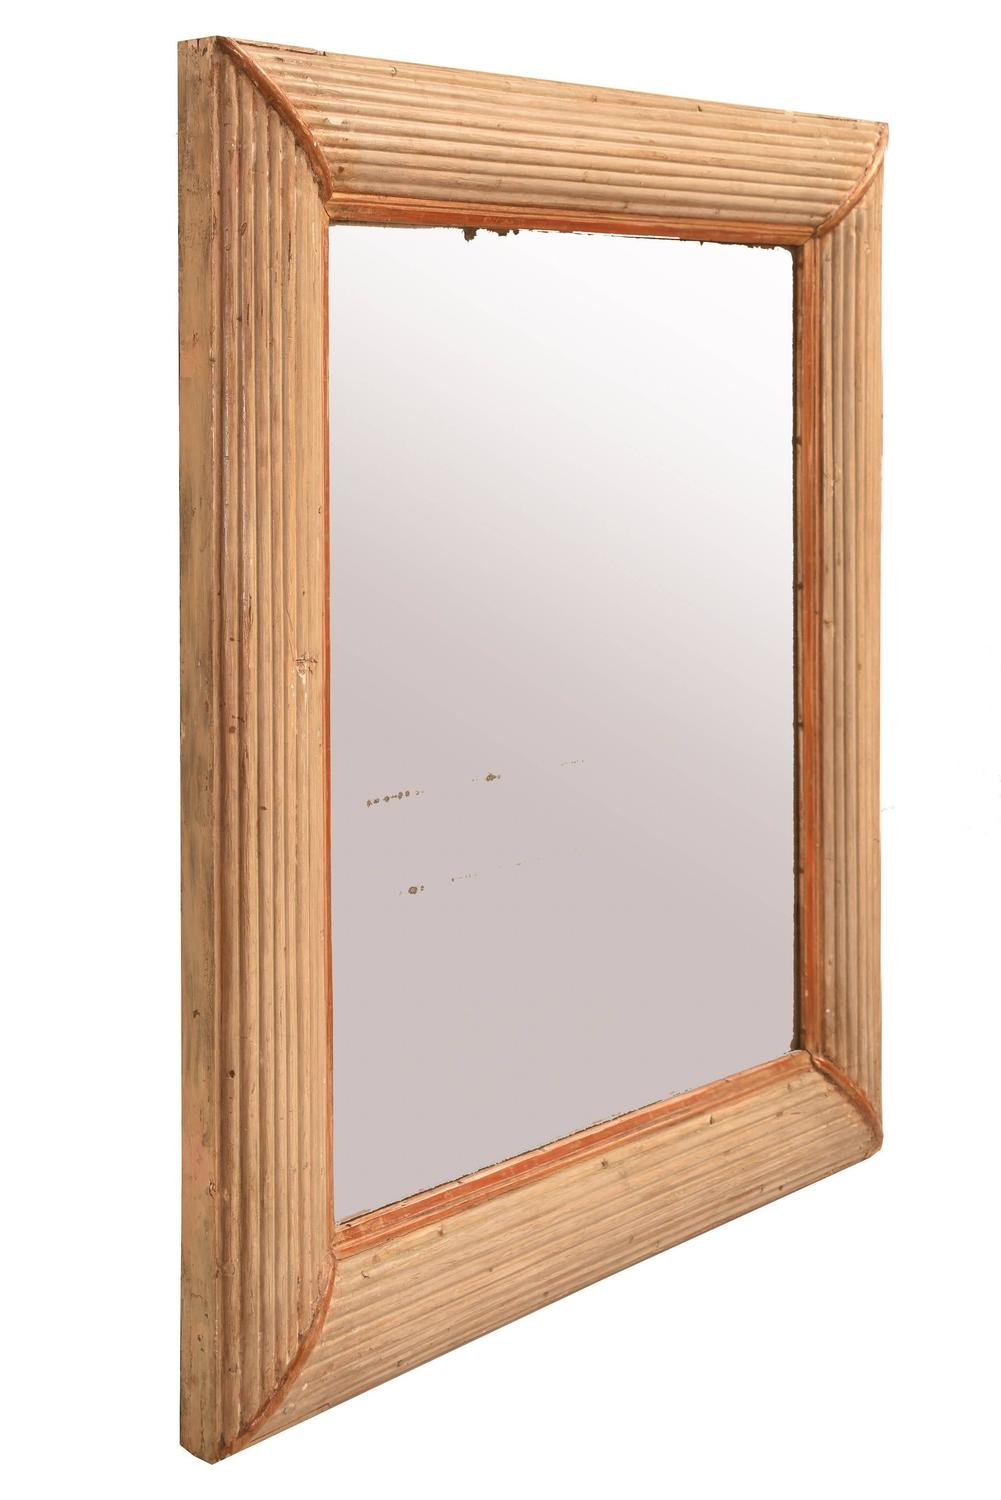 Elegant 19th century french wall mirror for sale at 1stdibs for Elegant mirrors